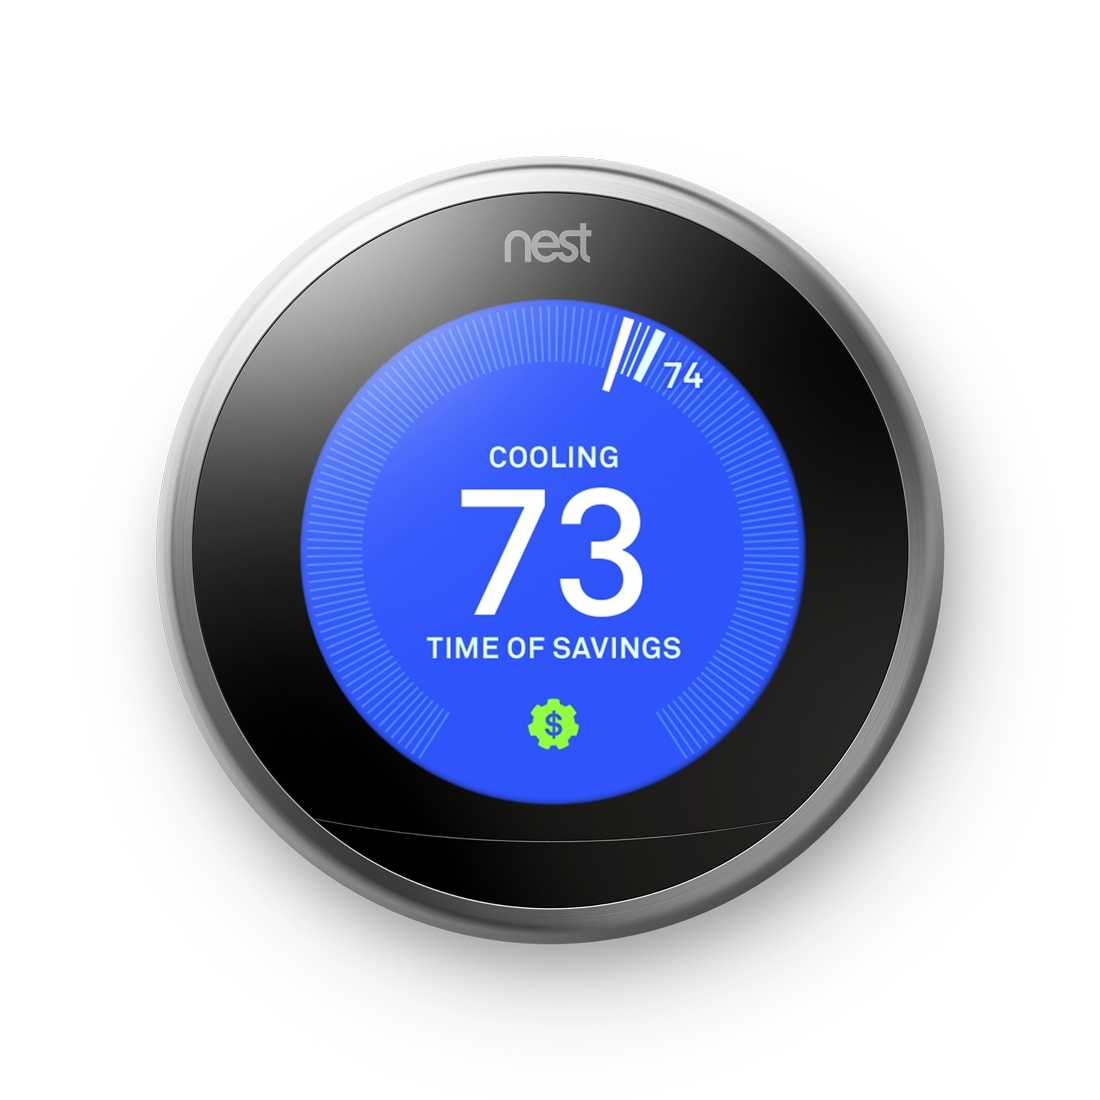 Nest S Time Of Savings Feature Makes The Thermostat Even Smarter Hive Energy Efficiency